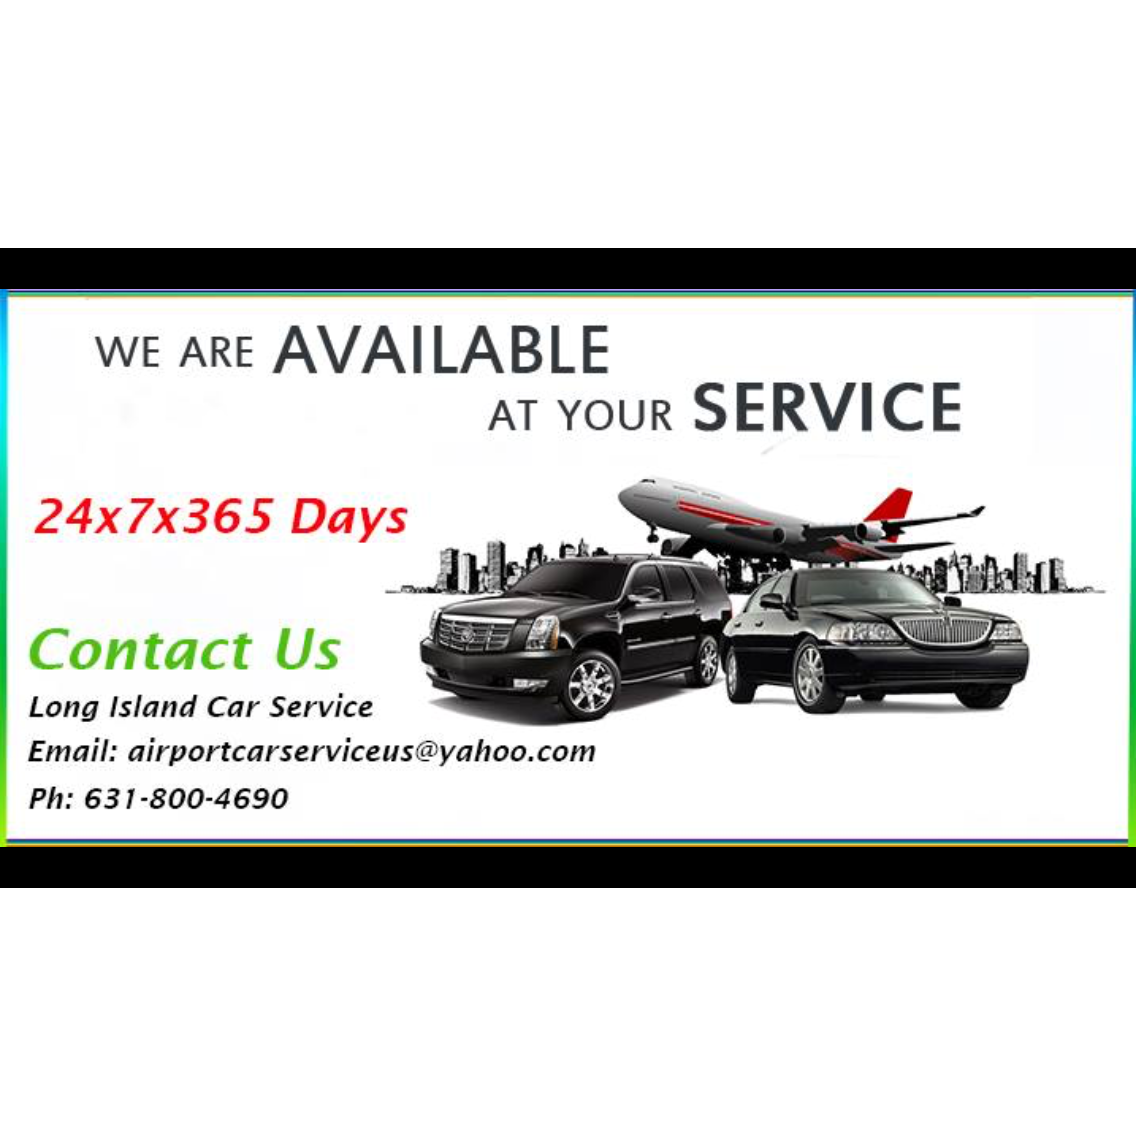 Limo service coupons